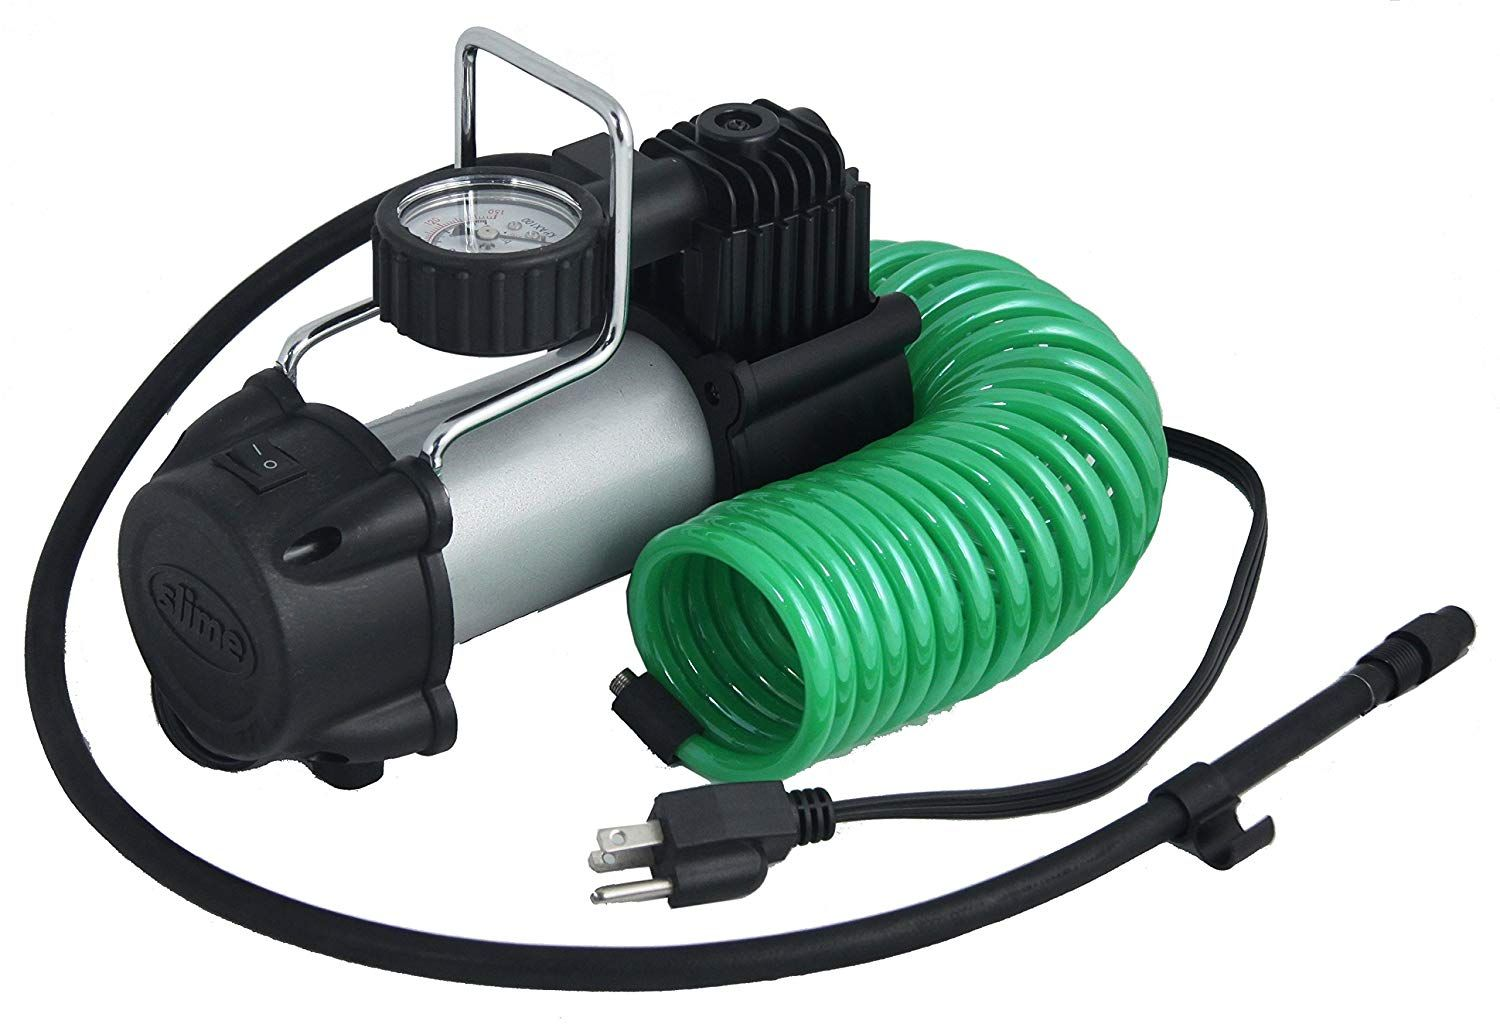 Slime 40045 Direct Drive 120V Tire Inflator with Wall